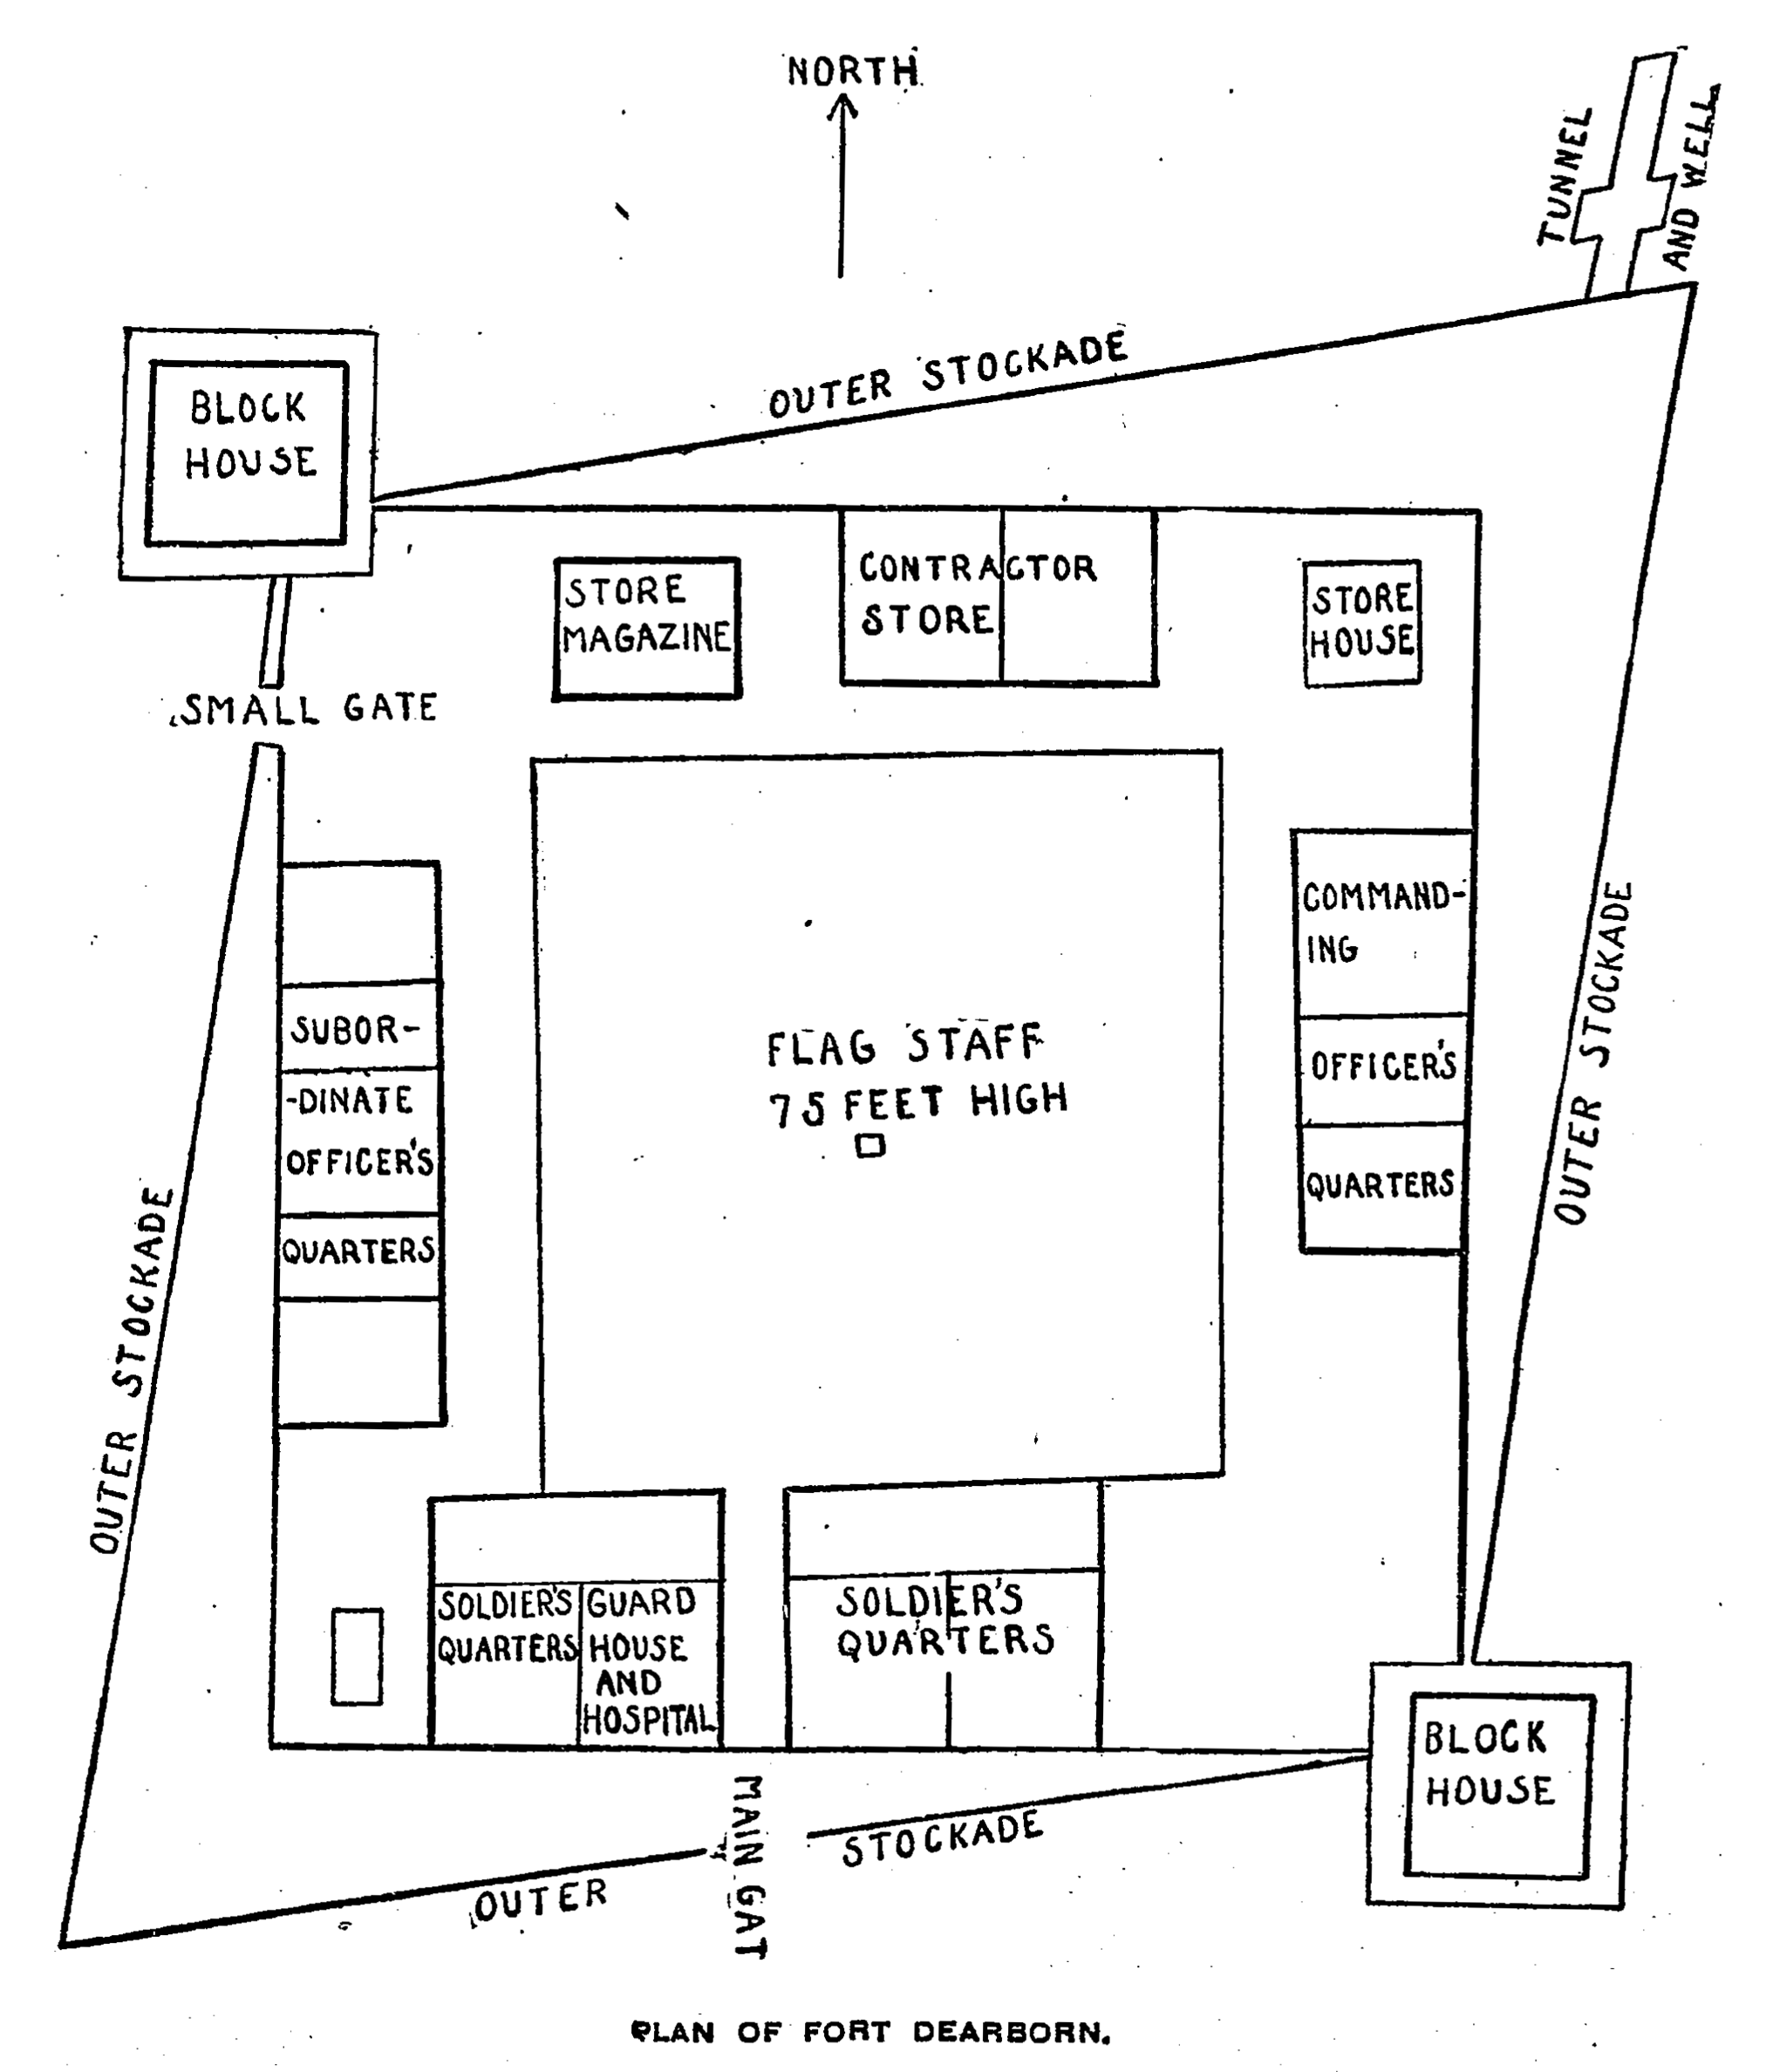 Dearborn Png - File:Plan of first Fort Dearborn.png - Wikimedia Commons